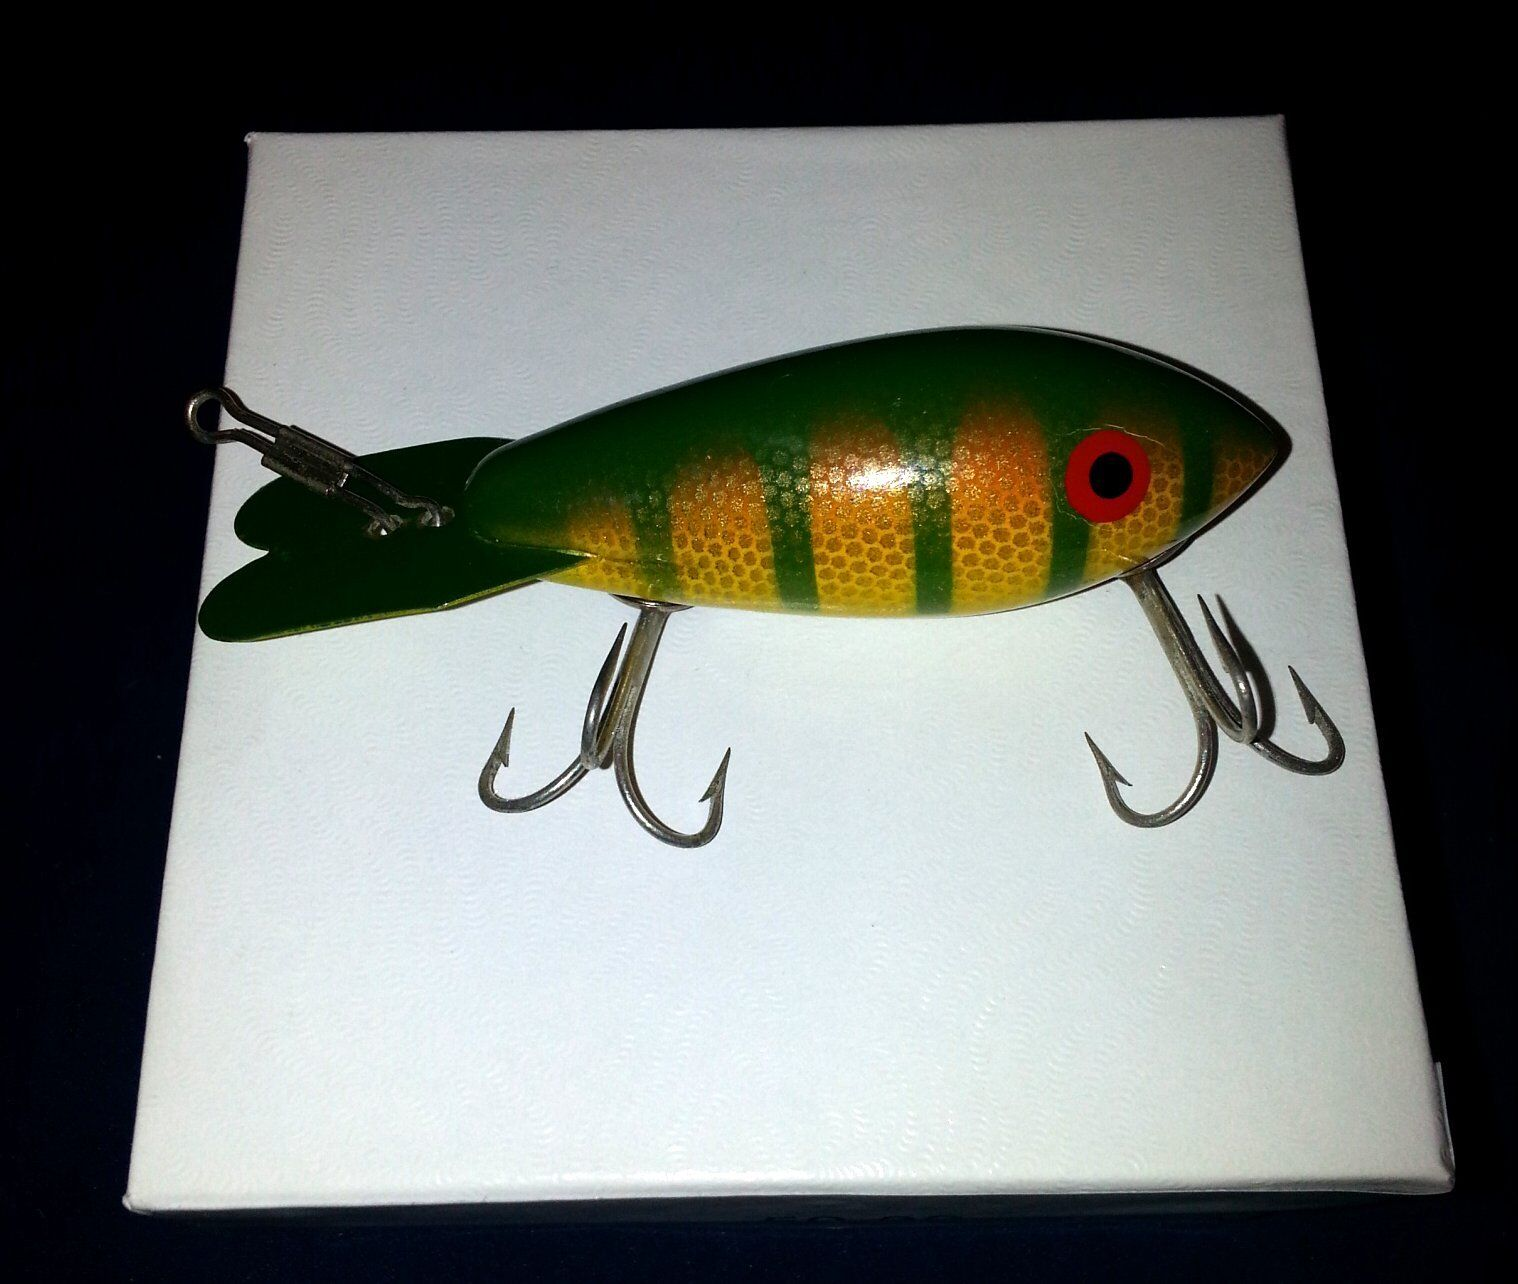 VINTAGE WOOD  FISHING LURE 3 1  2 INCHES METAL TAIL PAINTED green & yellow  select from the newest brands like